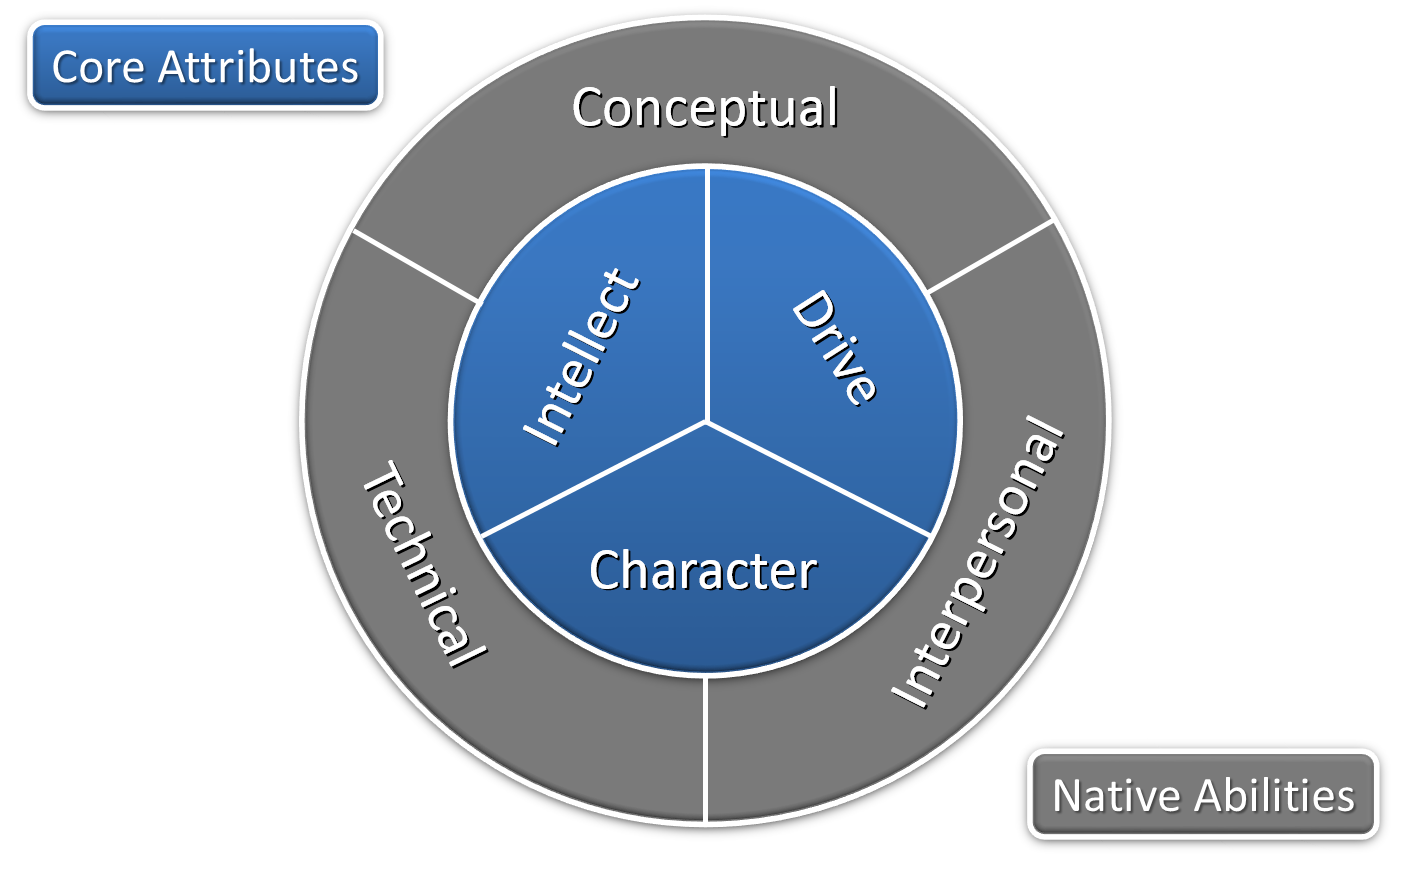 The Whole Consultant Model